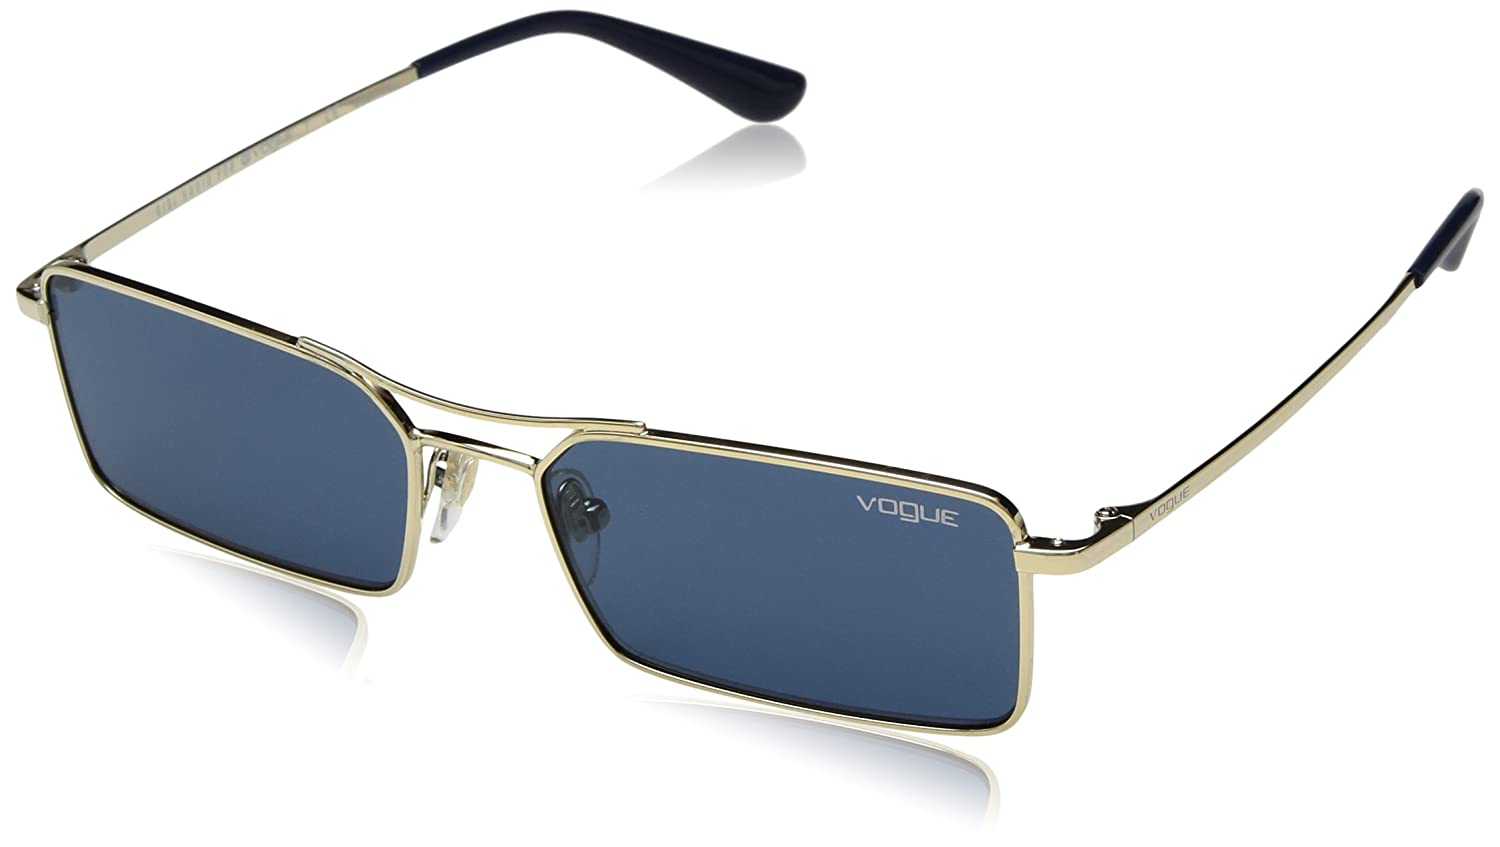 66e52ca4c4 Amazon.com: VOGUE Women's 0vo4106s Rectangular Sunglasses, Gold, 55 mm:  Clothing